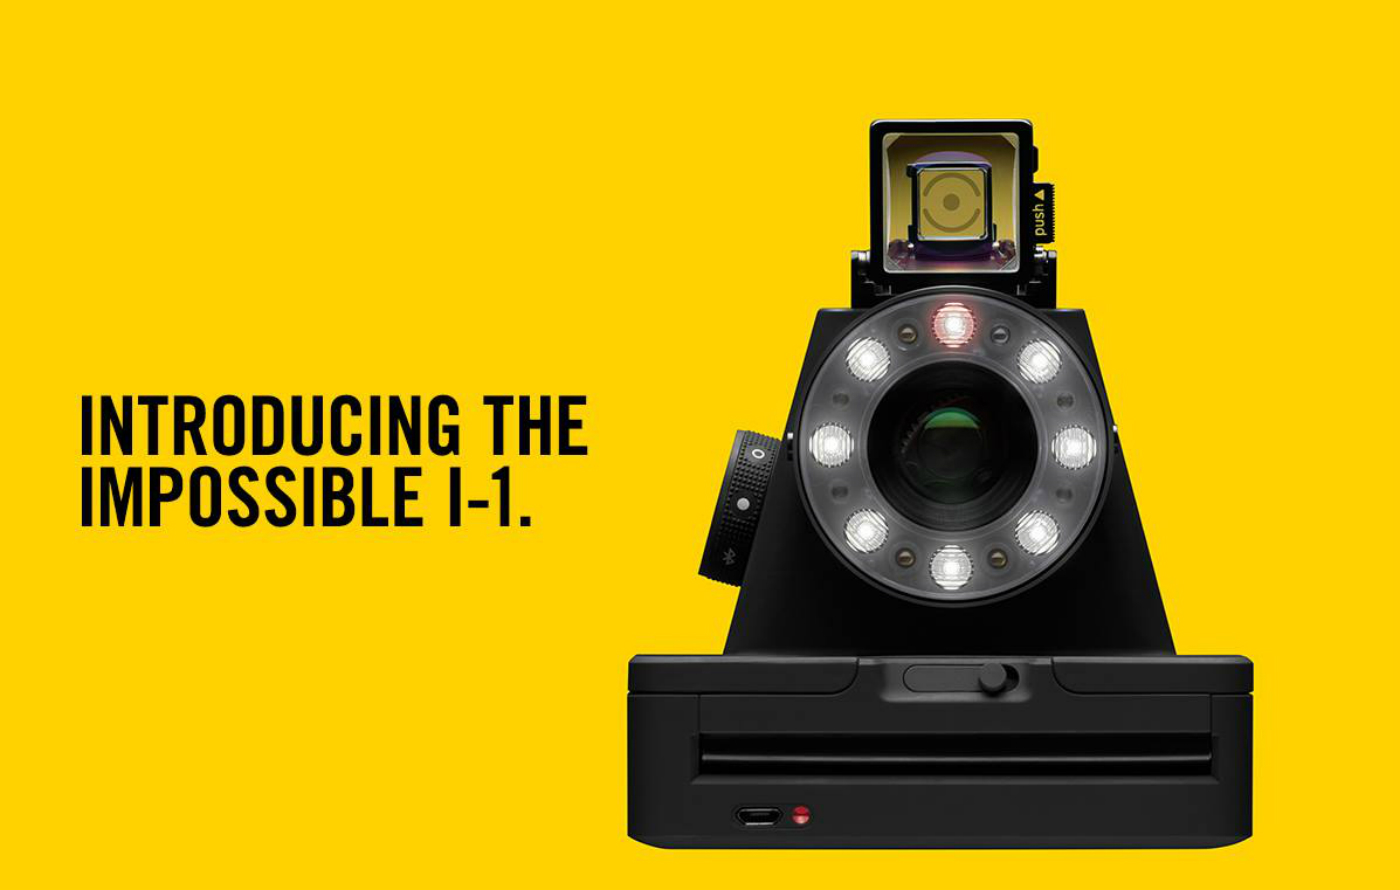 Impossible Project launches its first instant film camera